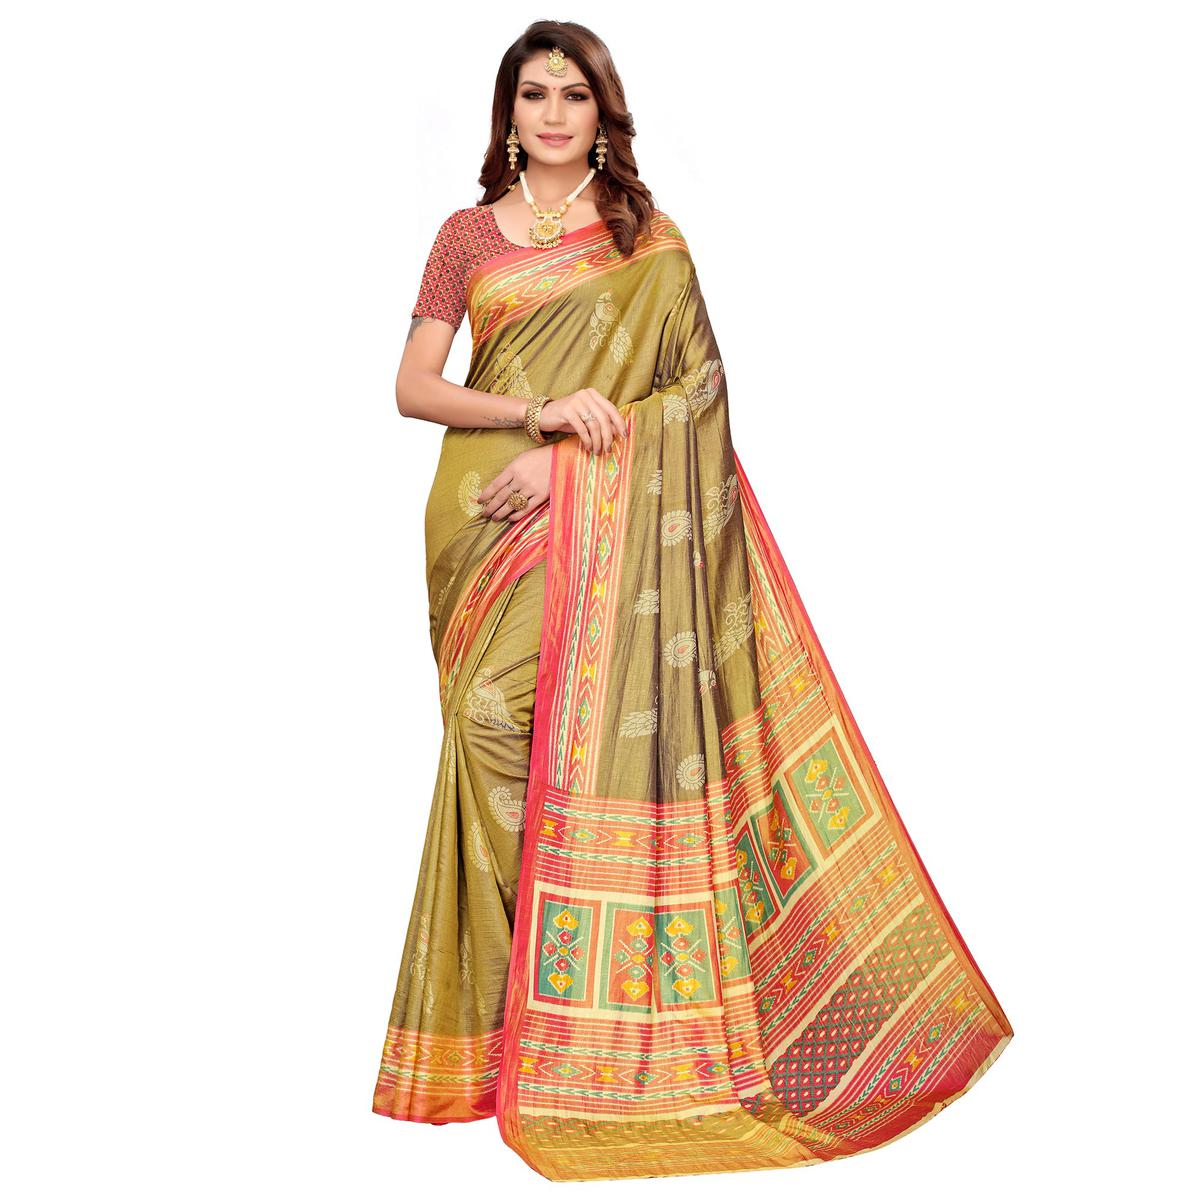 Staring Olive Green Colored Casual Printed Art Silk Saree